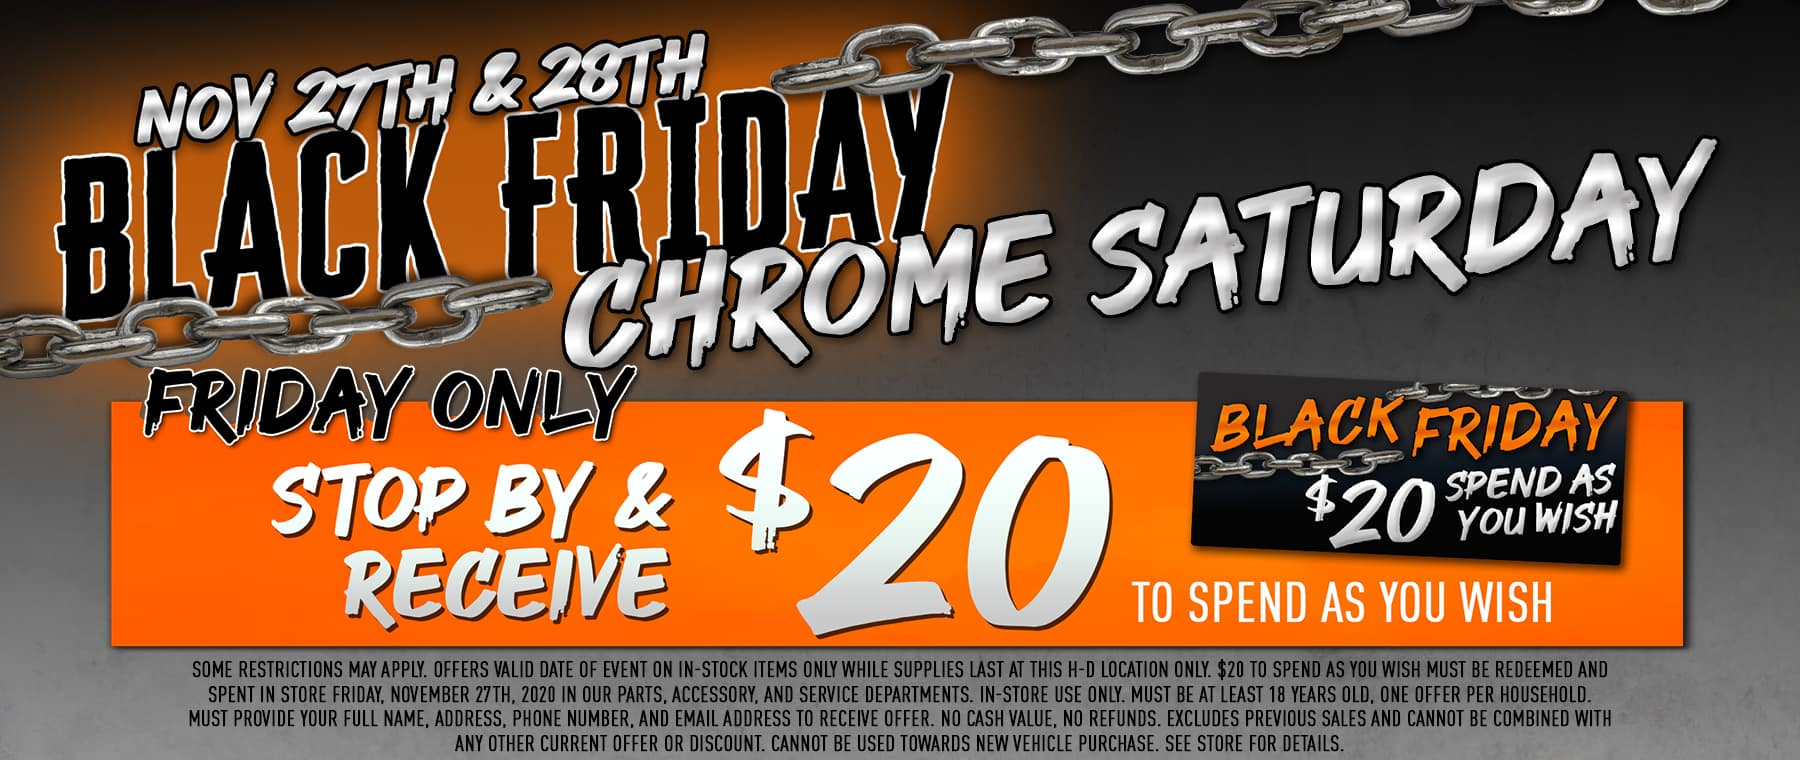 Black Friday / Chrome Saturday!